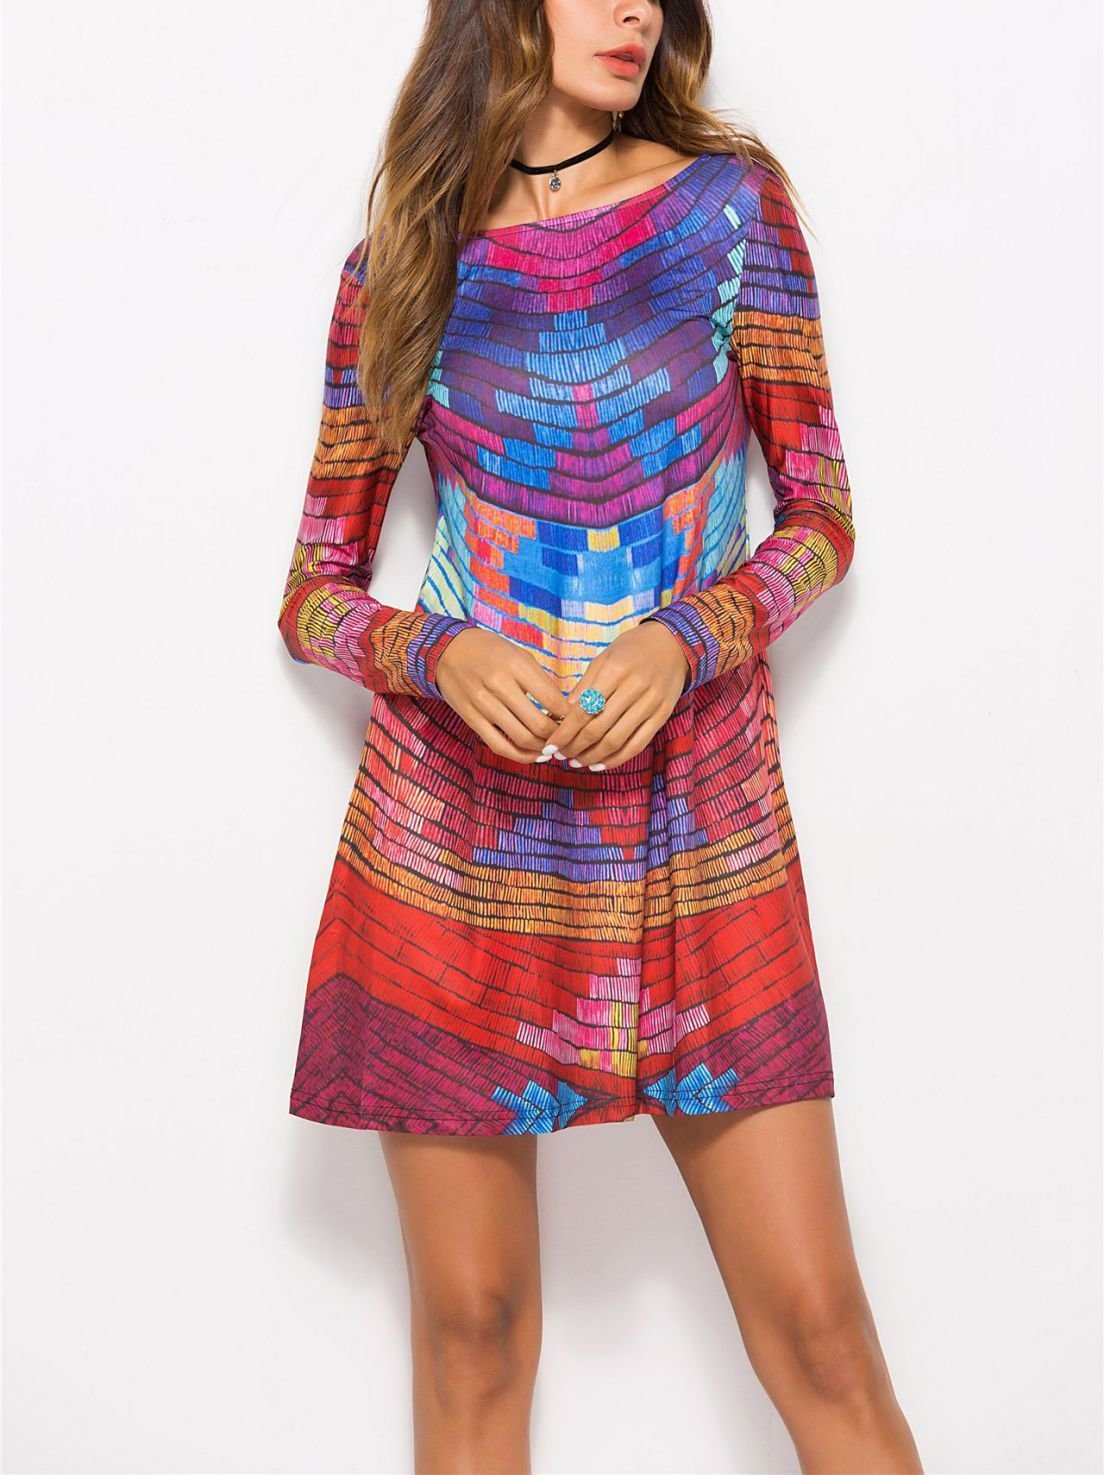 Rainbow-Colored Cocktail Dress with Low Scoop Back